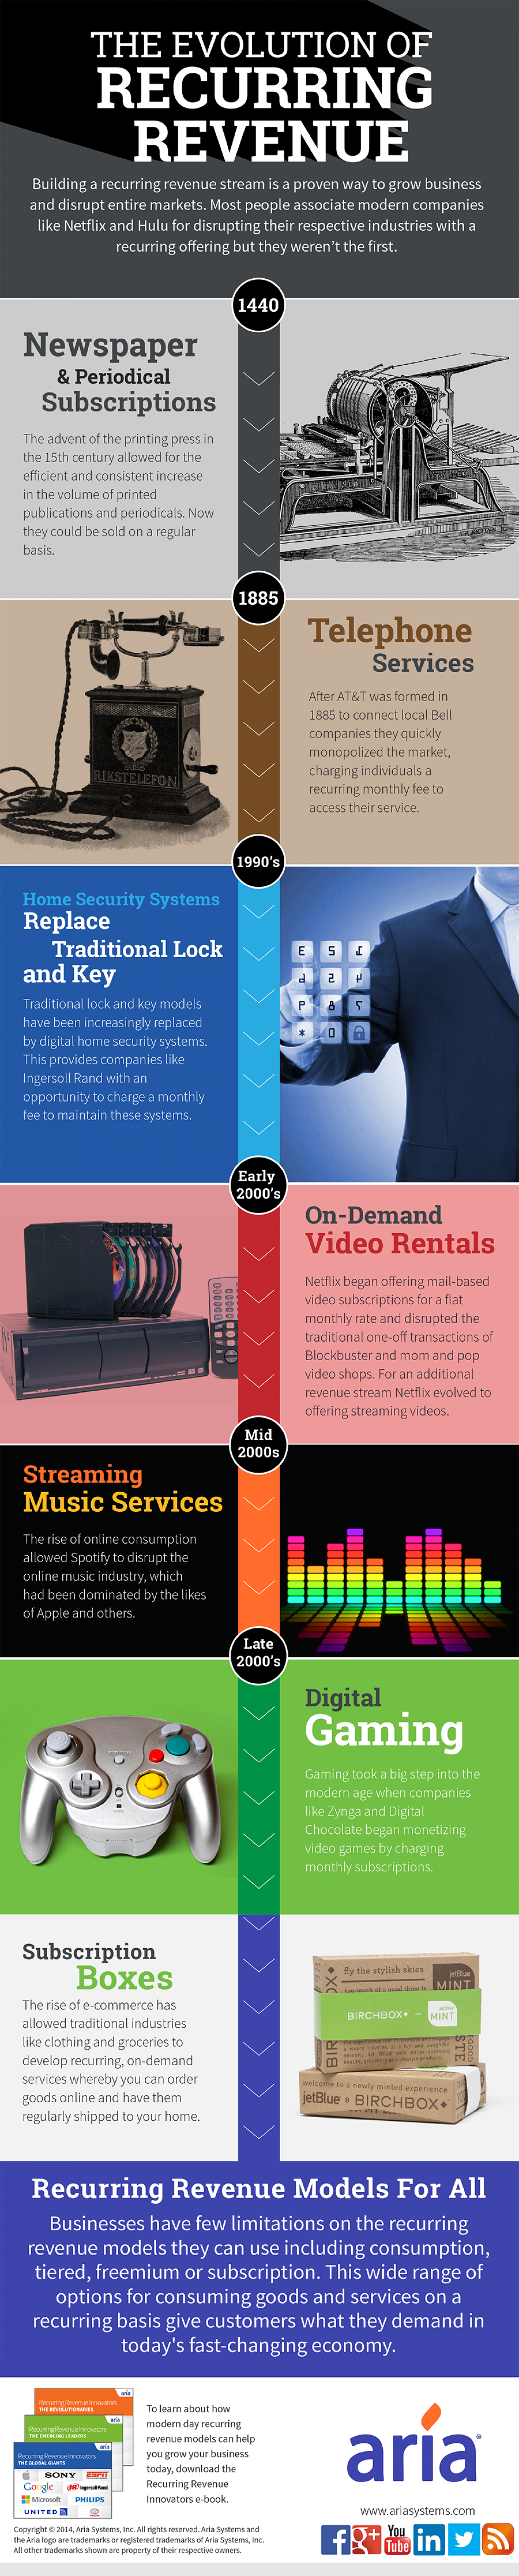 The Evolution of Recurring Revenue Infographic